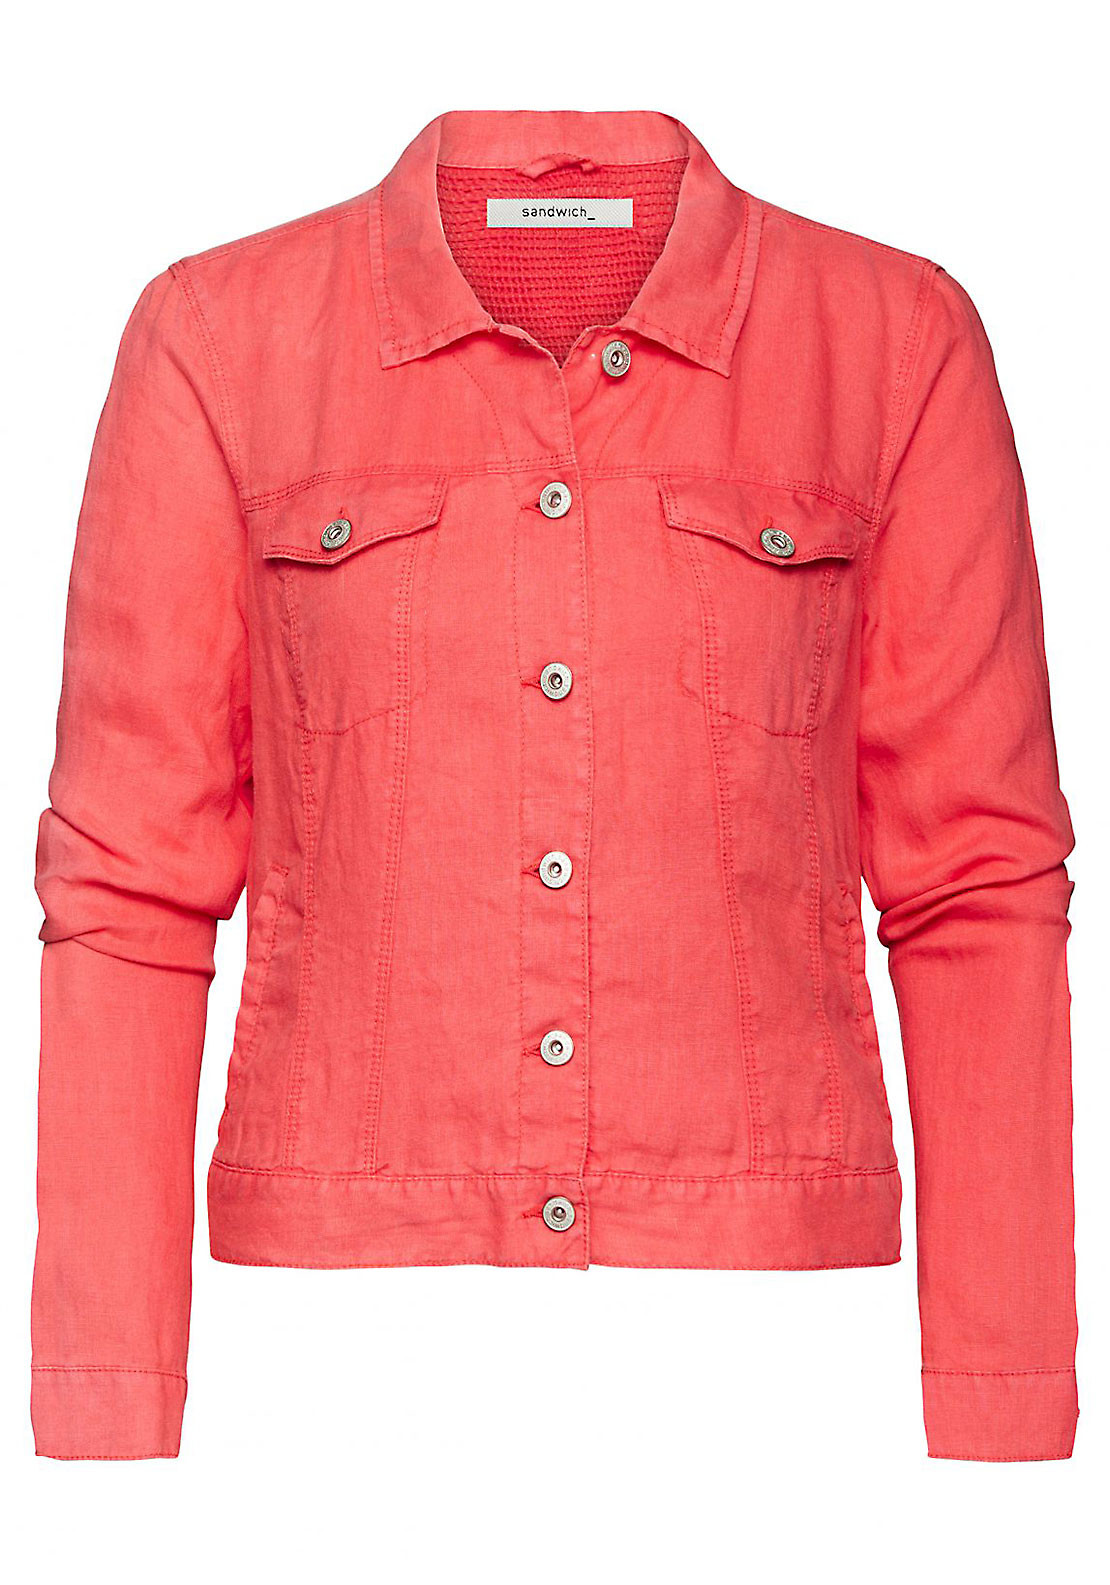 Sandwich Denim Style Linen Jacket, Red